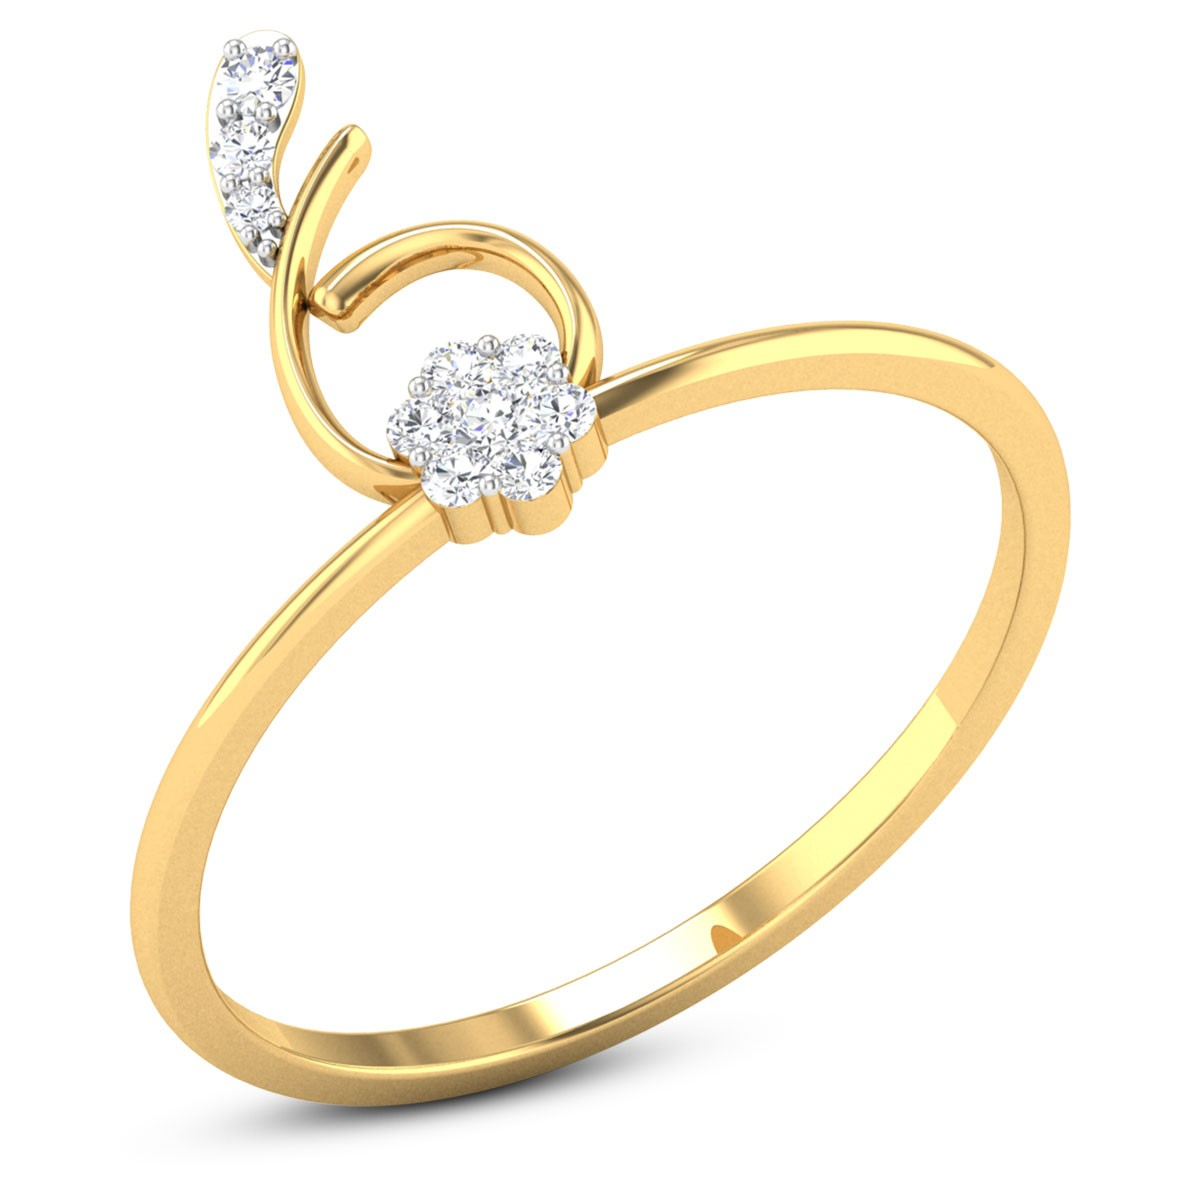 Buy Lynn Diamond Ring in 1.88 Grams Gold Online